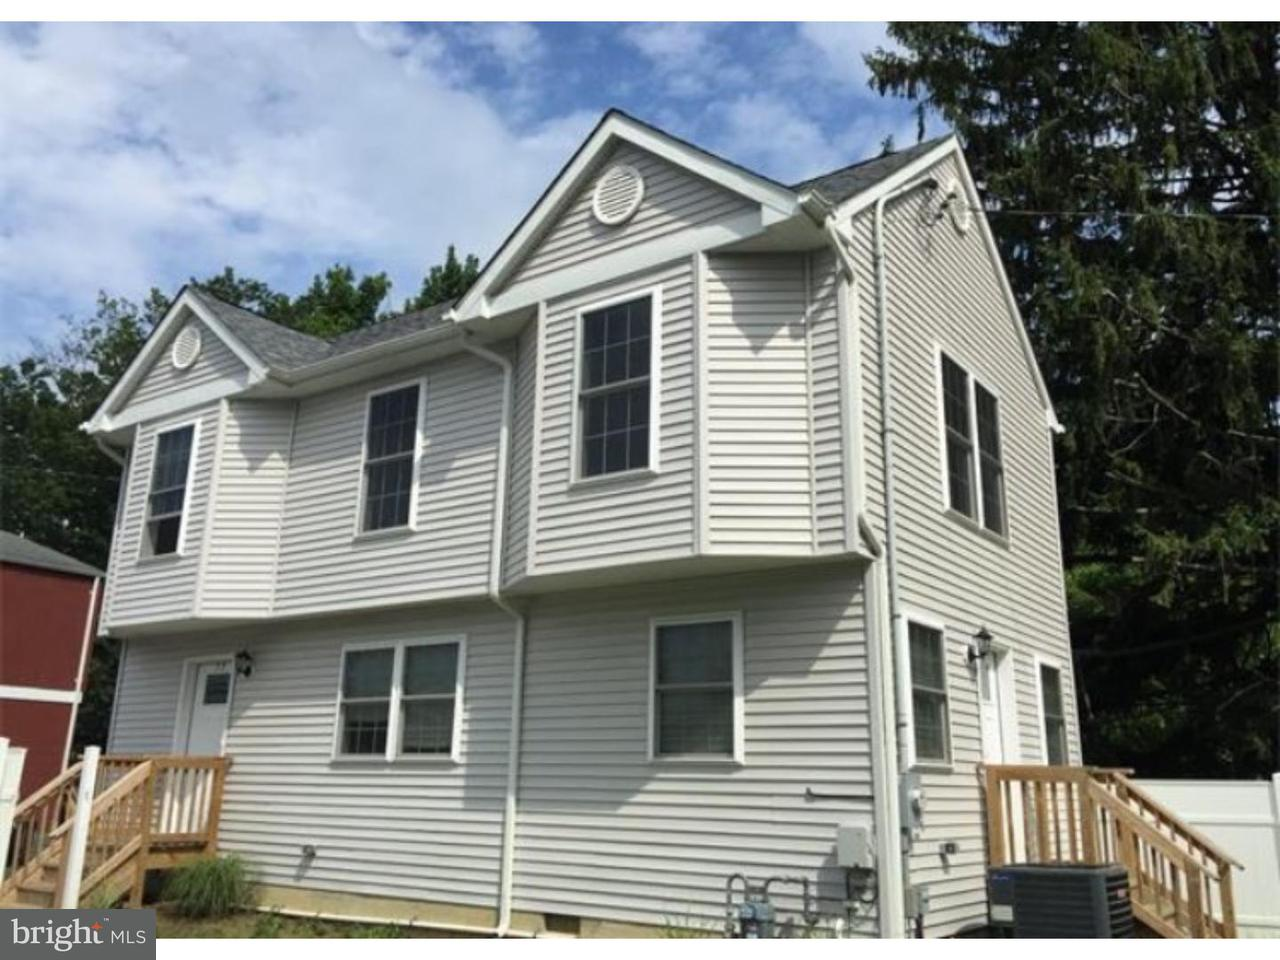 Townhouse for Rent at 99 PENNSYLVANIA Avenue Ewing Township, New Jersey 08638 United States